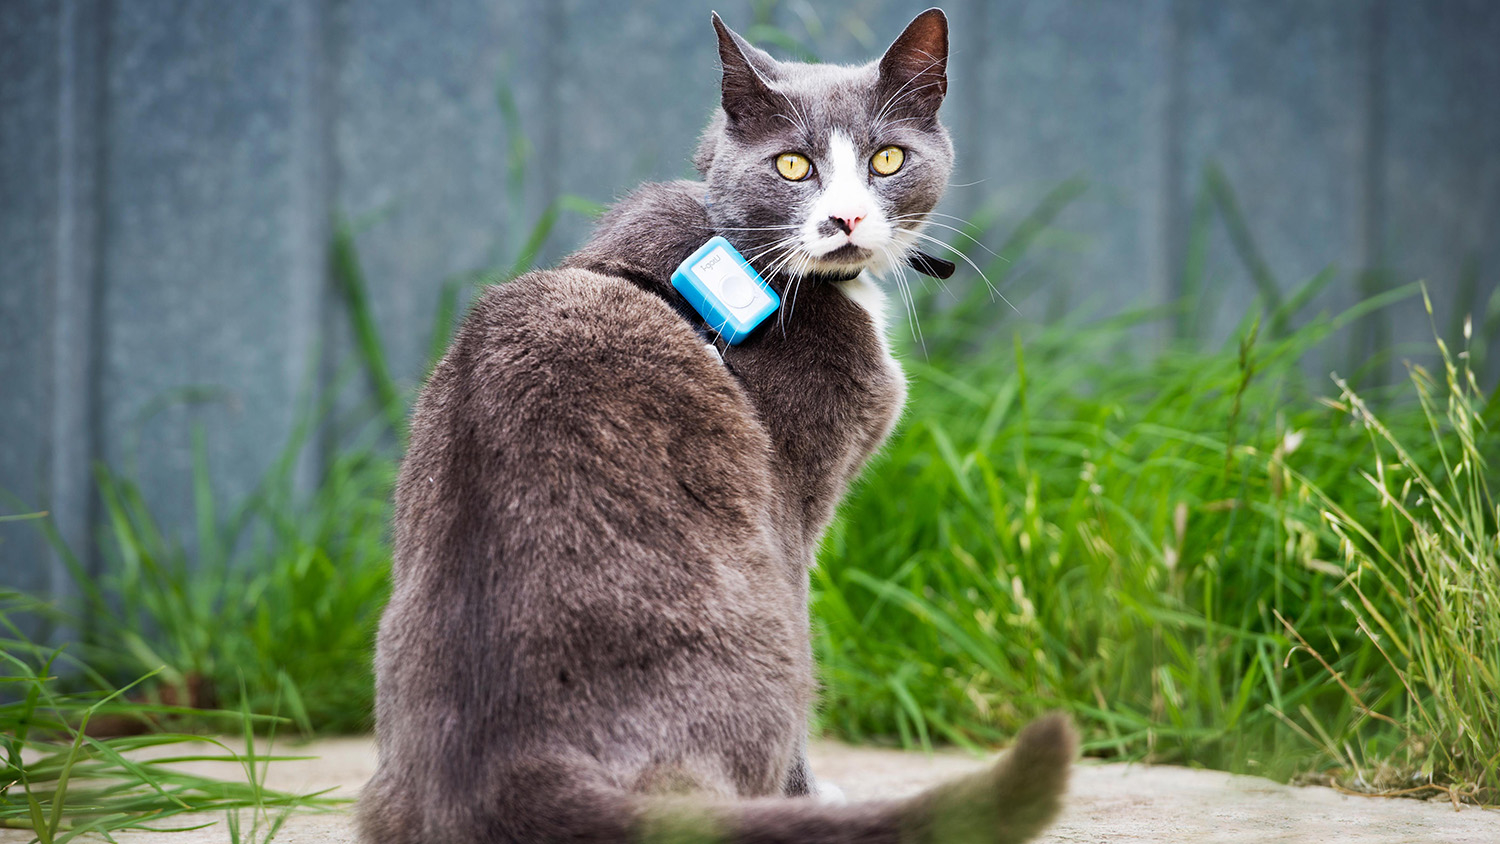 Cat with GPS tracking device on collar.